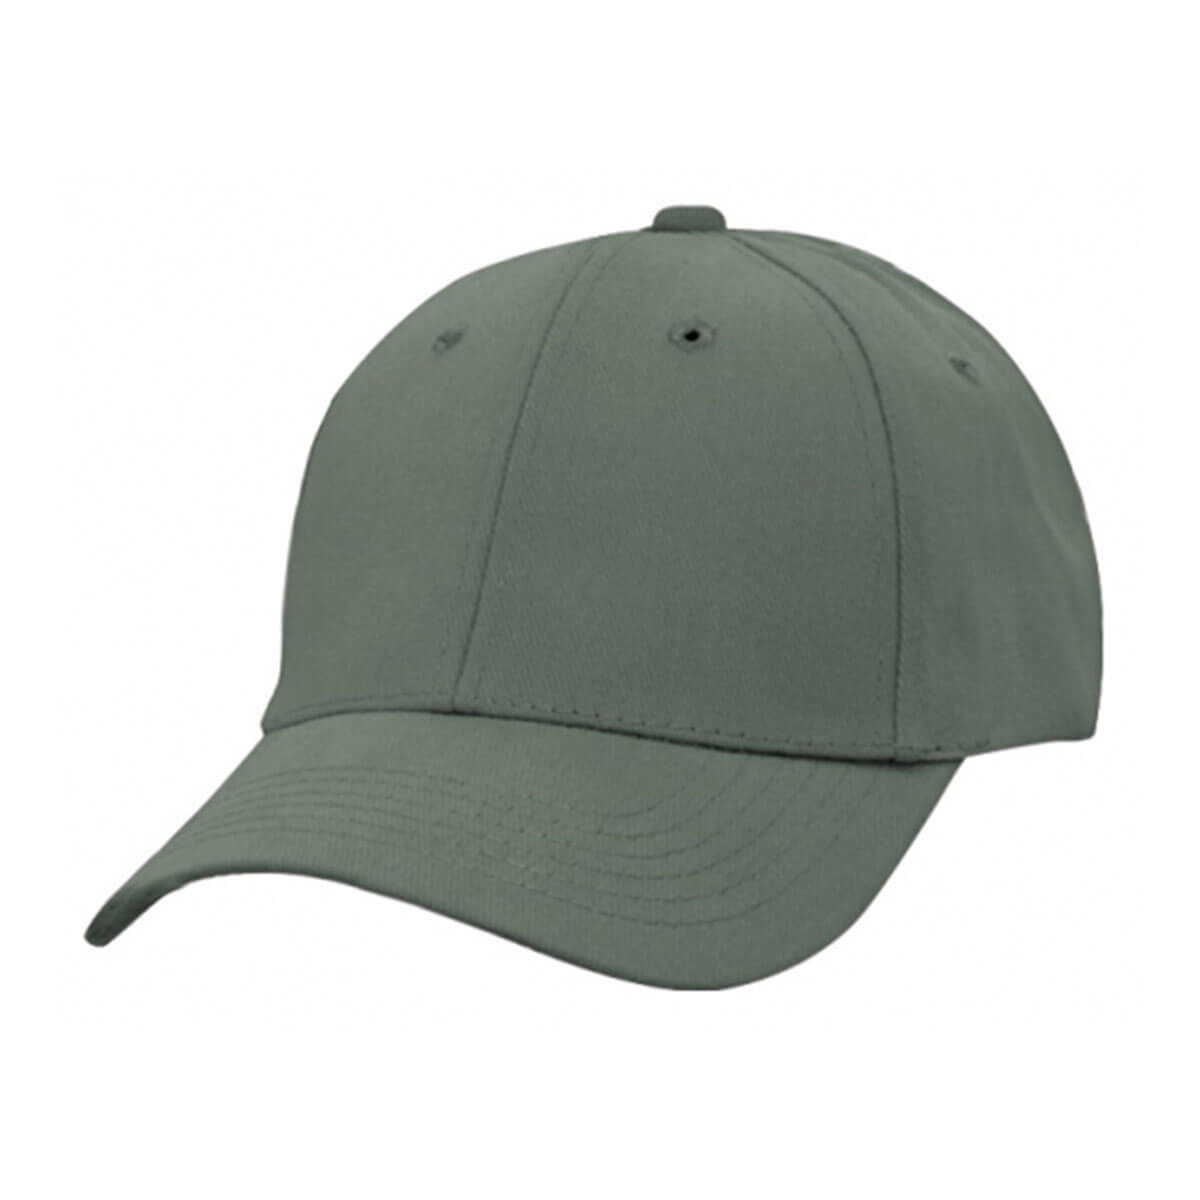 Heavy Brushed Cotton Cap-Charcoal